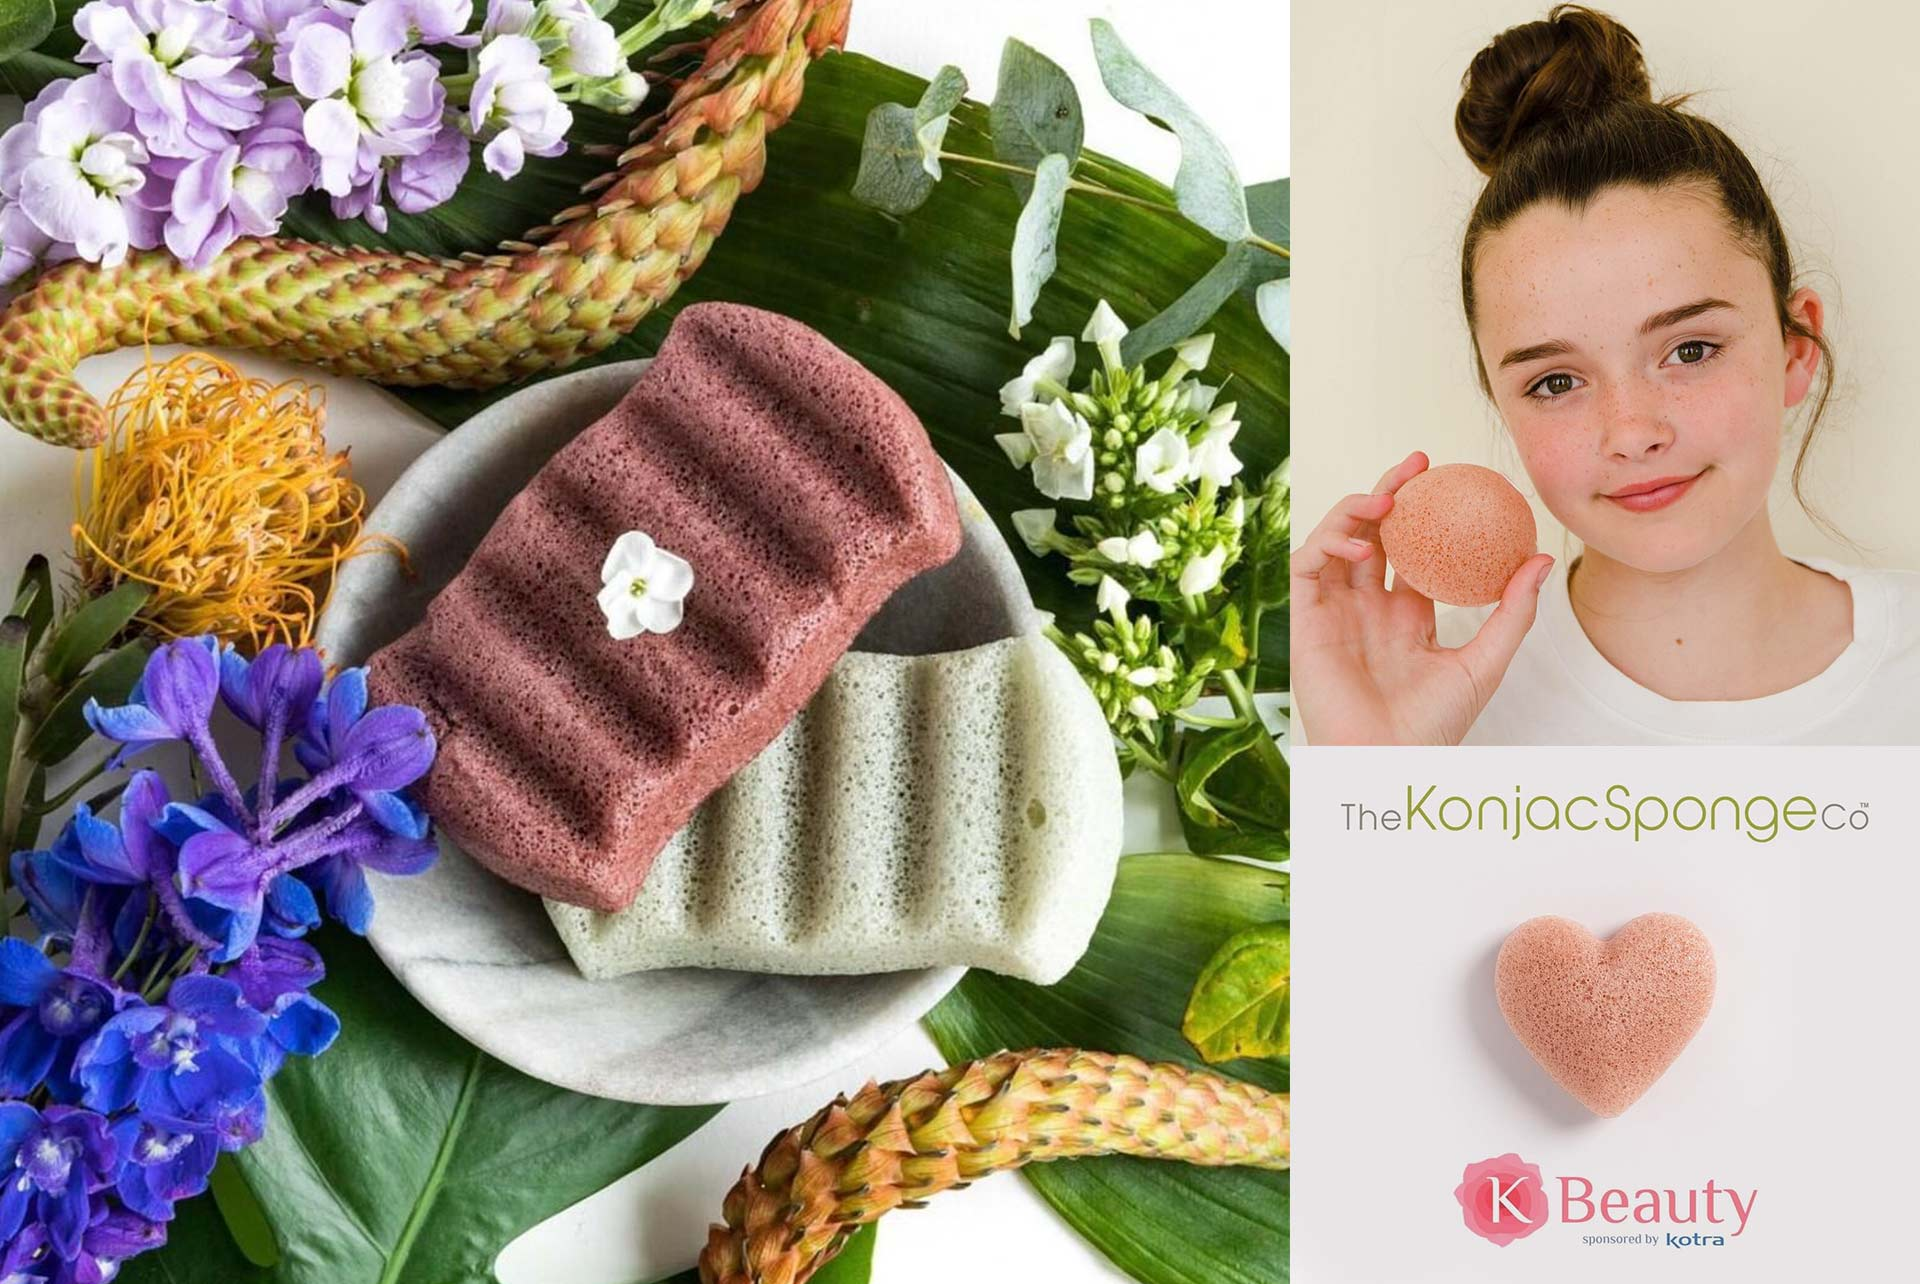 Is Konjac Sponge Co, Cruelty-Free & Vegan?